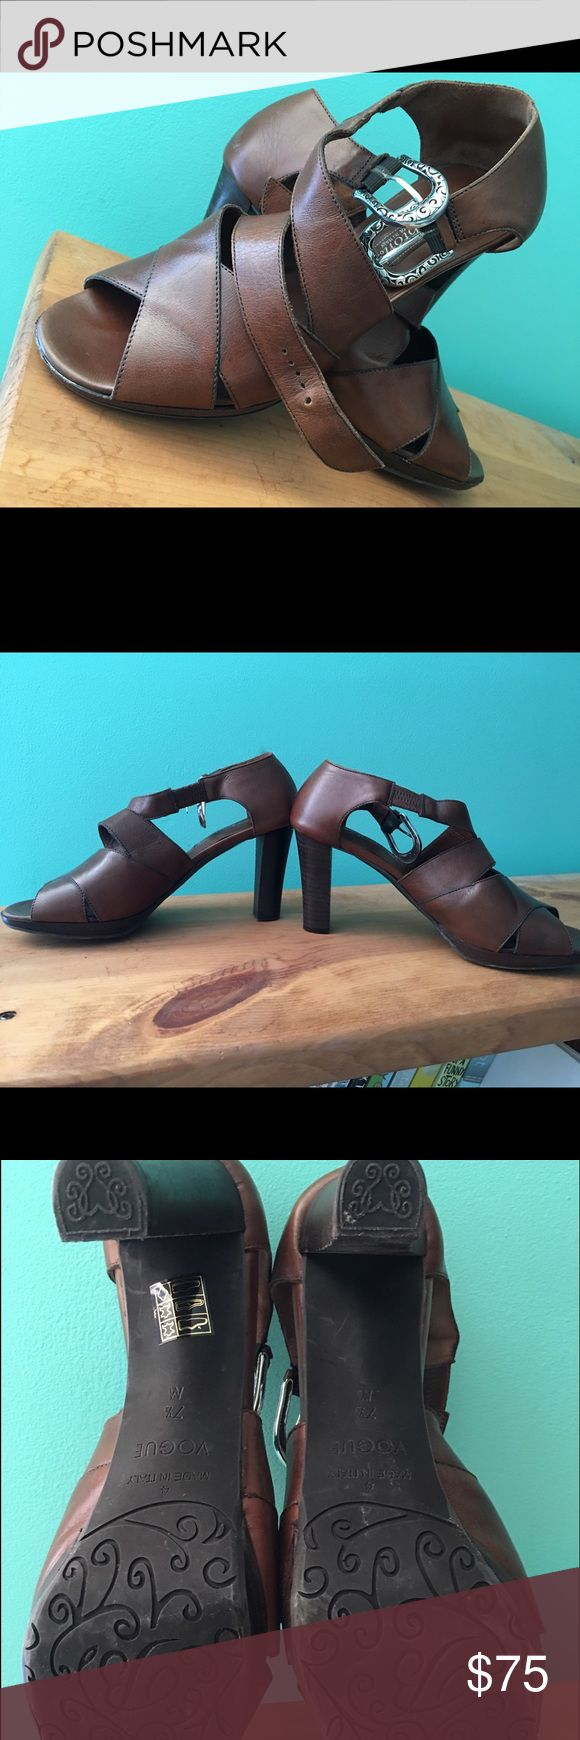 "Brighton sandals Beautiful brown leather Brighton sandals with 3 1/2 "" heels... excellent condition...silver buckle... vogue style ... caramel color ... timeless and classic in style Brighton Shoes Sandals"